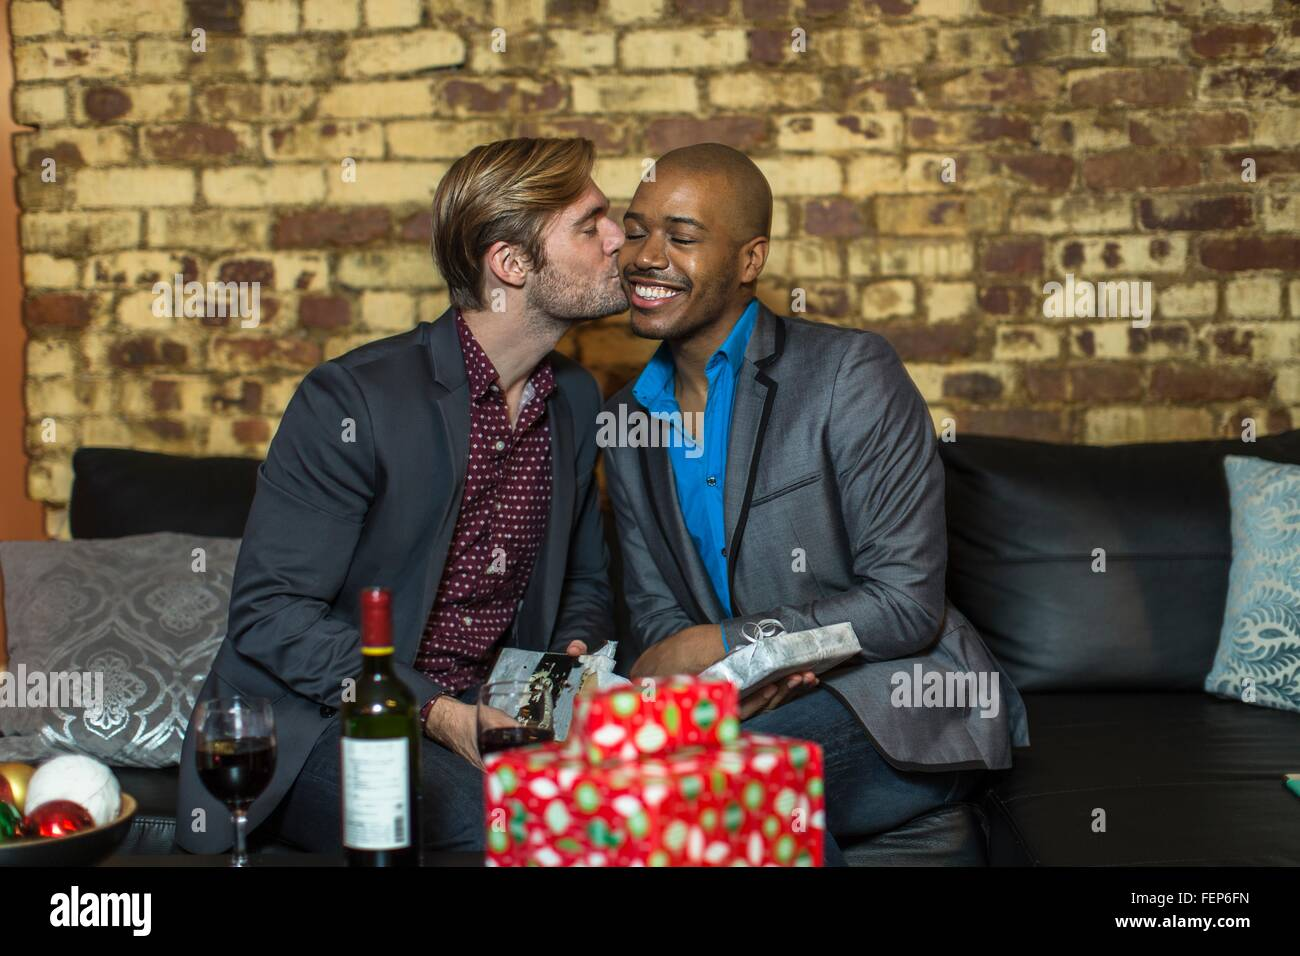 Male couple sitting on sofa exchanging Christmas gifts young man kissing partner on cheek  sc 1 st  Alamy & Male couple sitting on sofa exchanging Christmas gifts young man ...